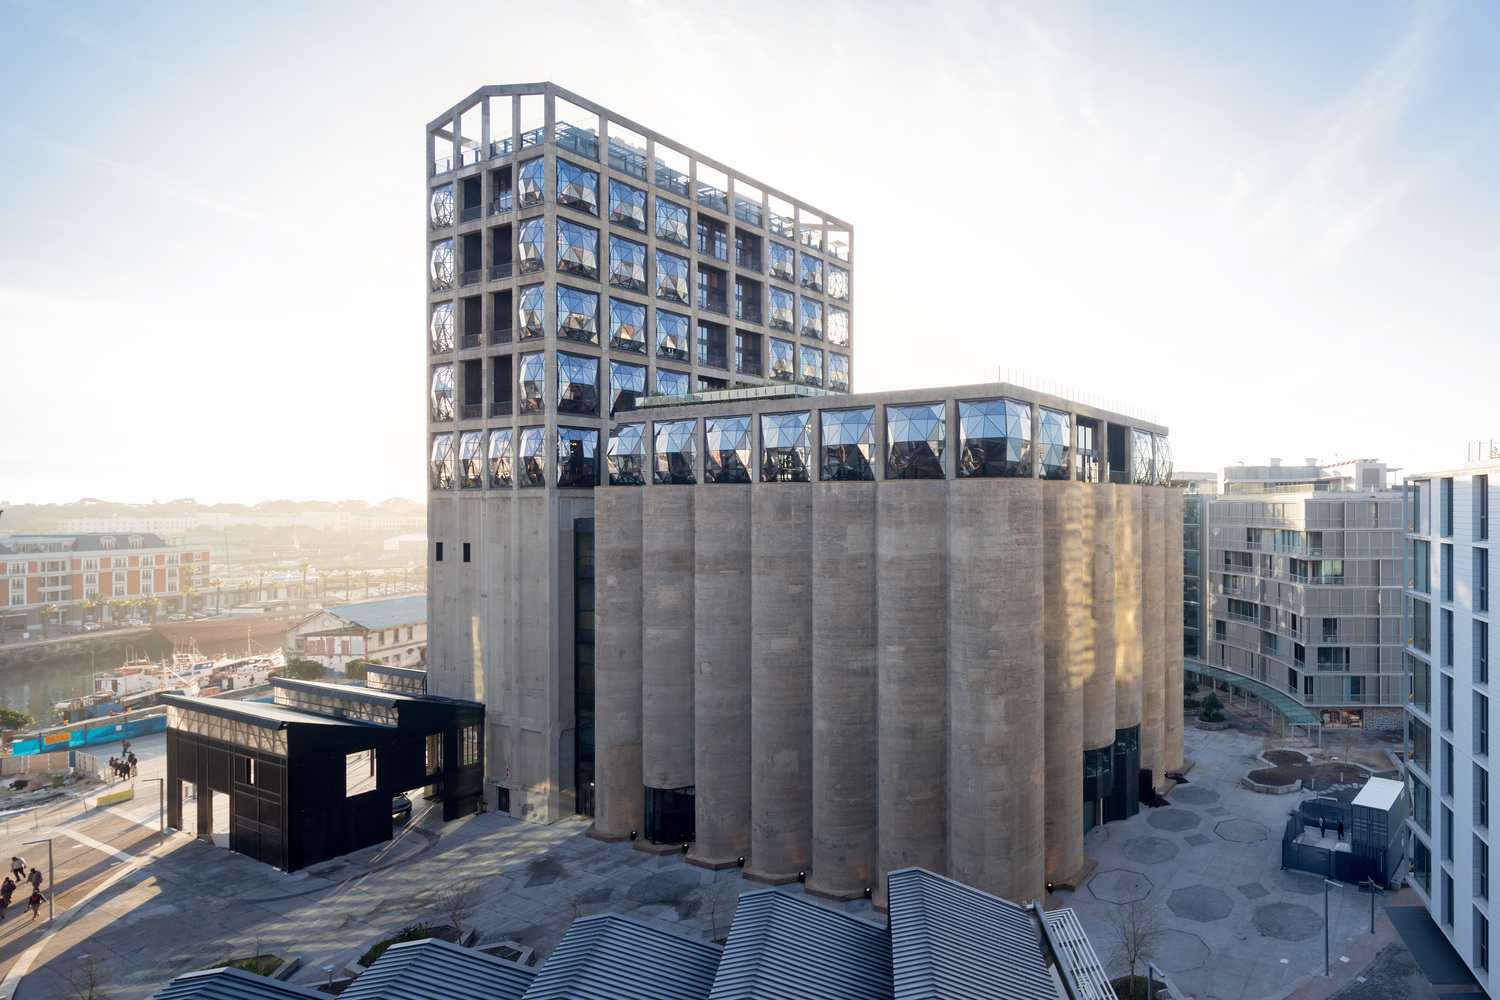 African Museum of Contemporary Art carved out of historic Grain Silo ...